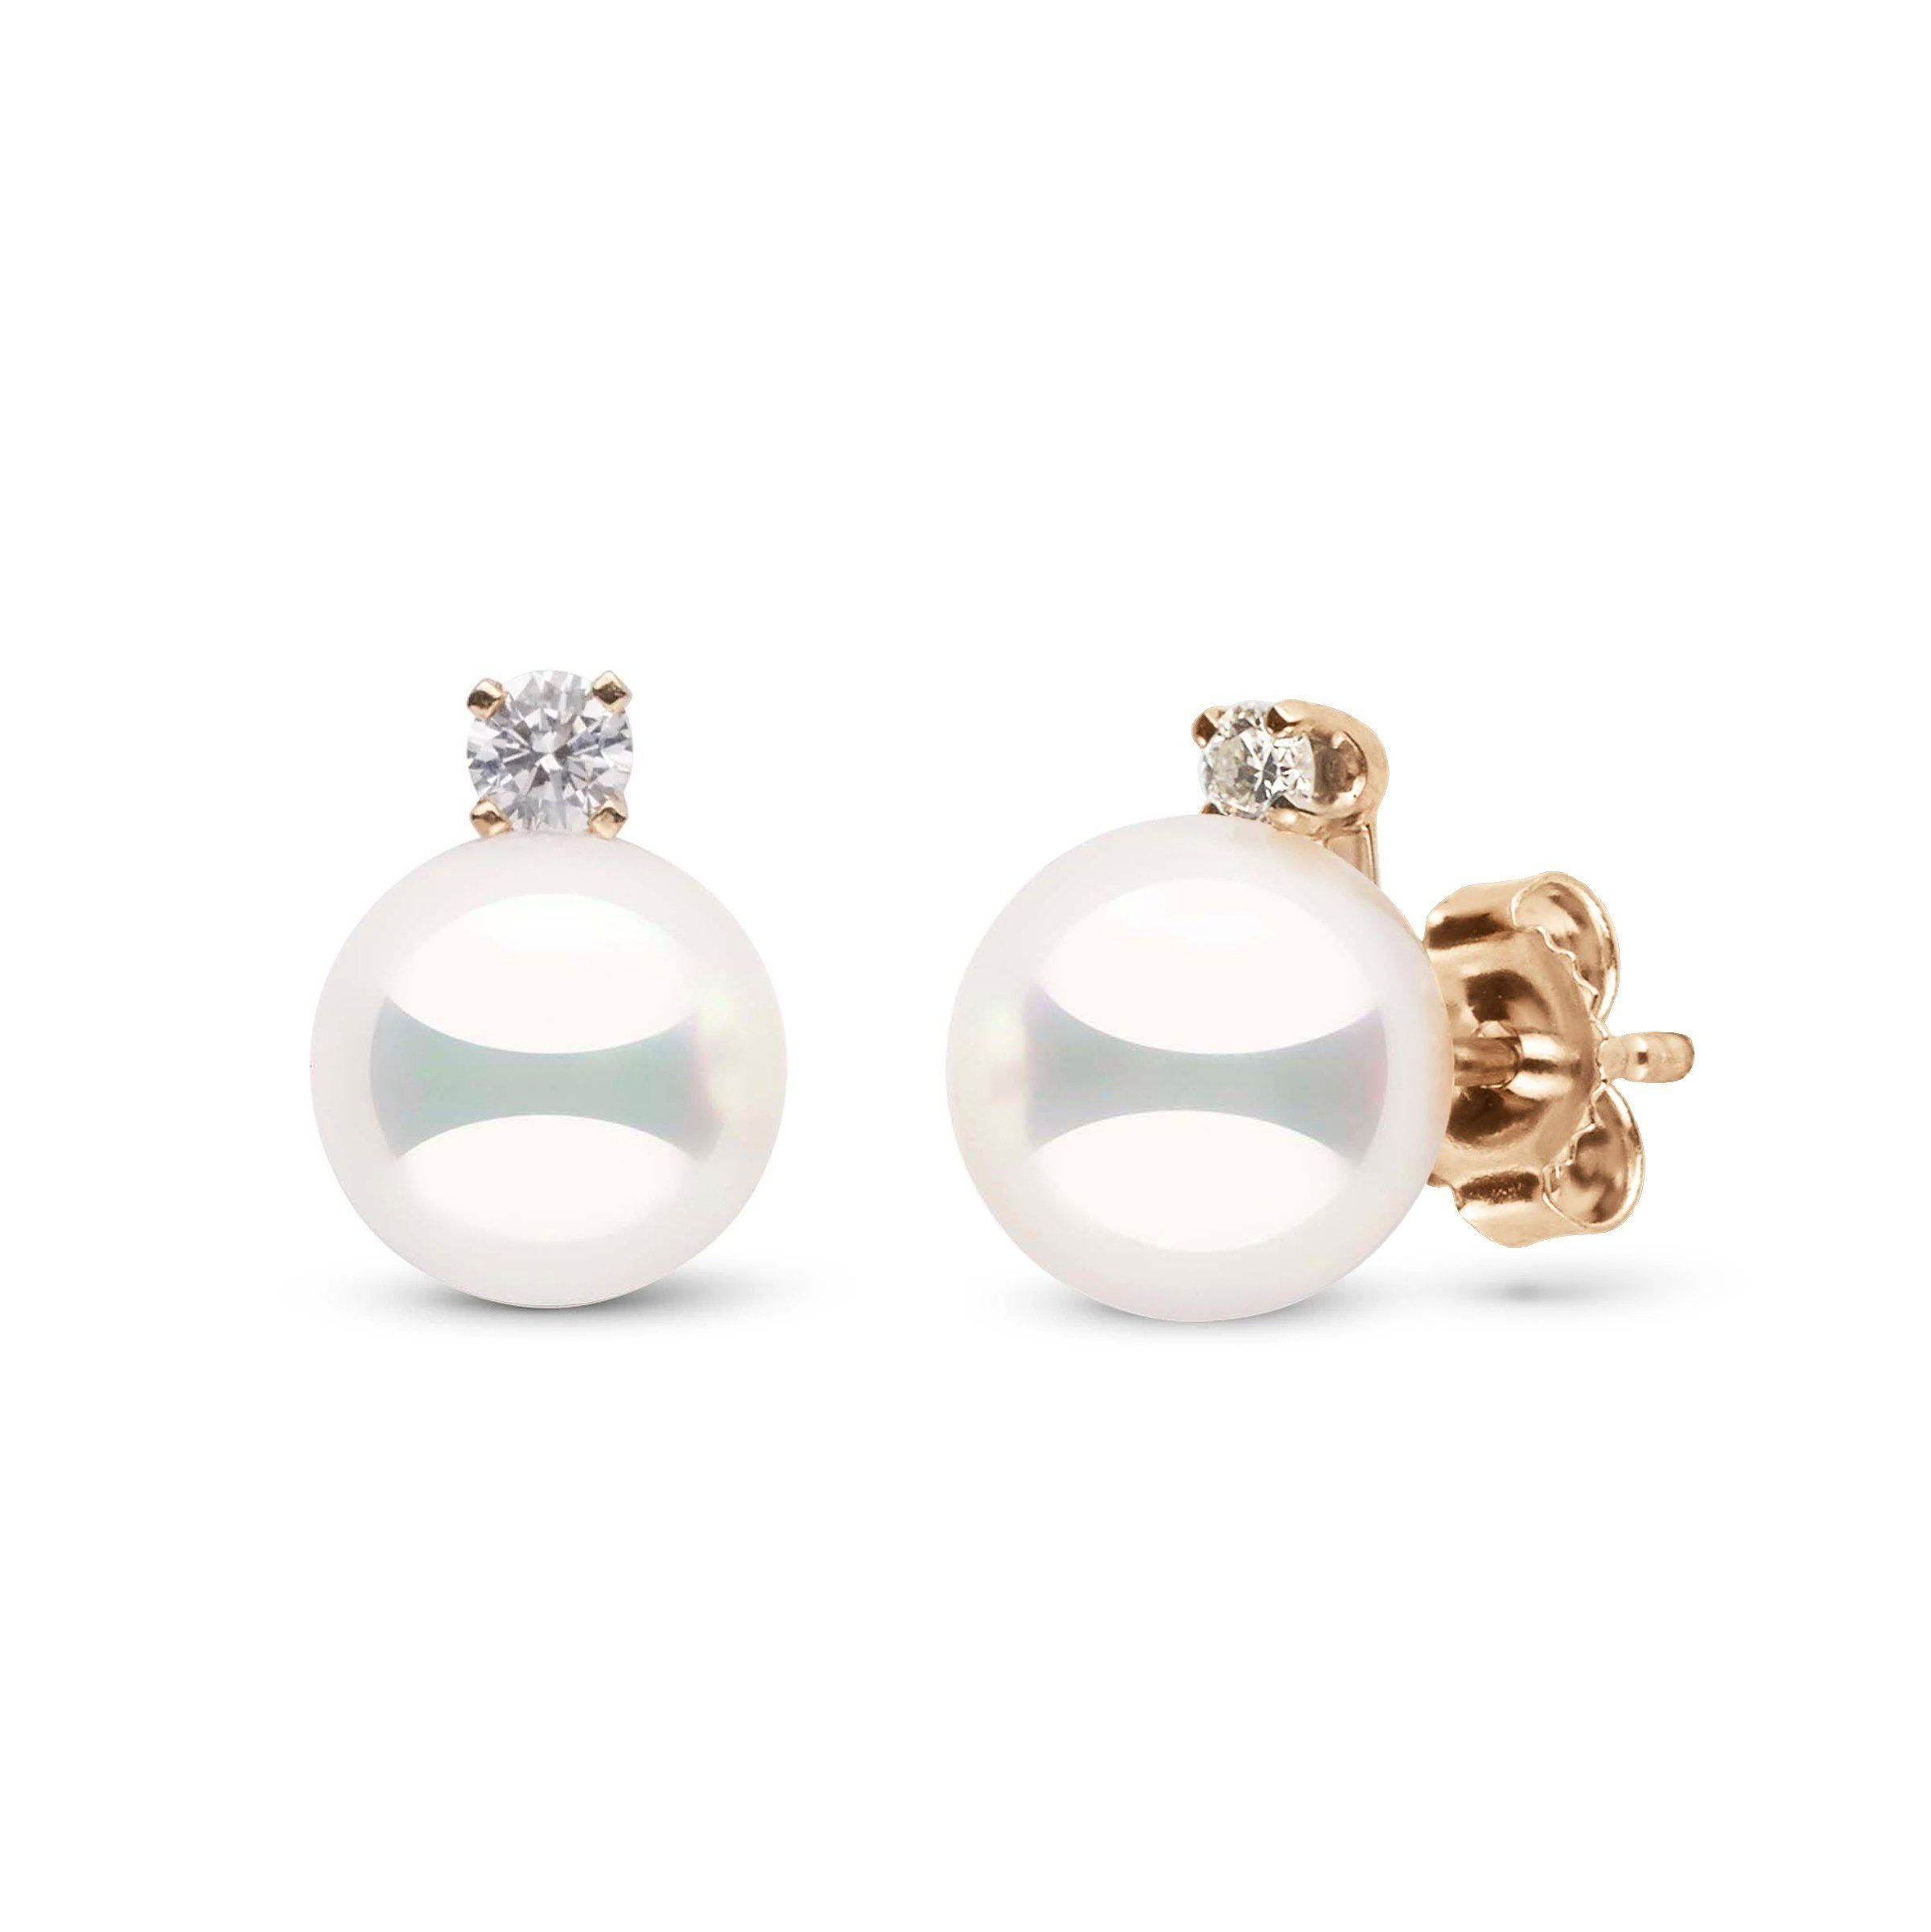 Starlight Collection 7.0-7.5 mm Natural White Hanadama Pearl and Diamond Stud Earrings